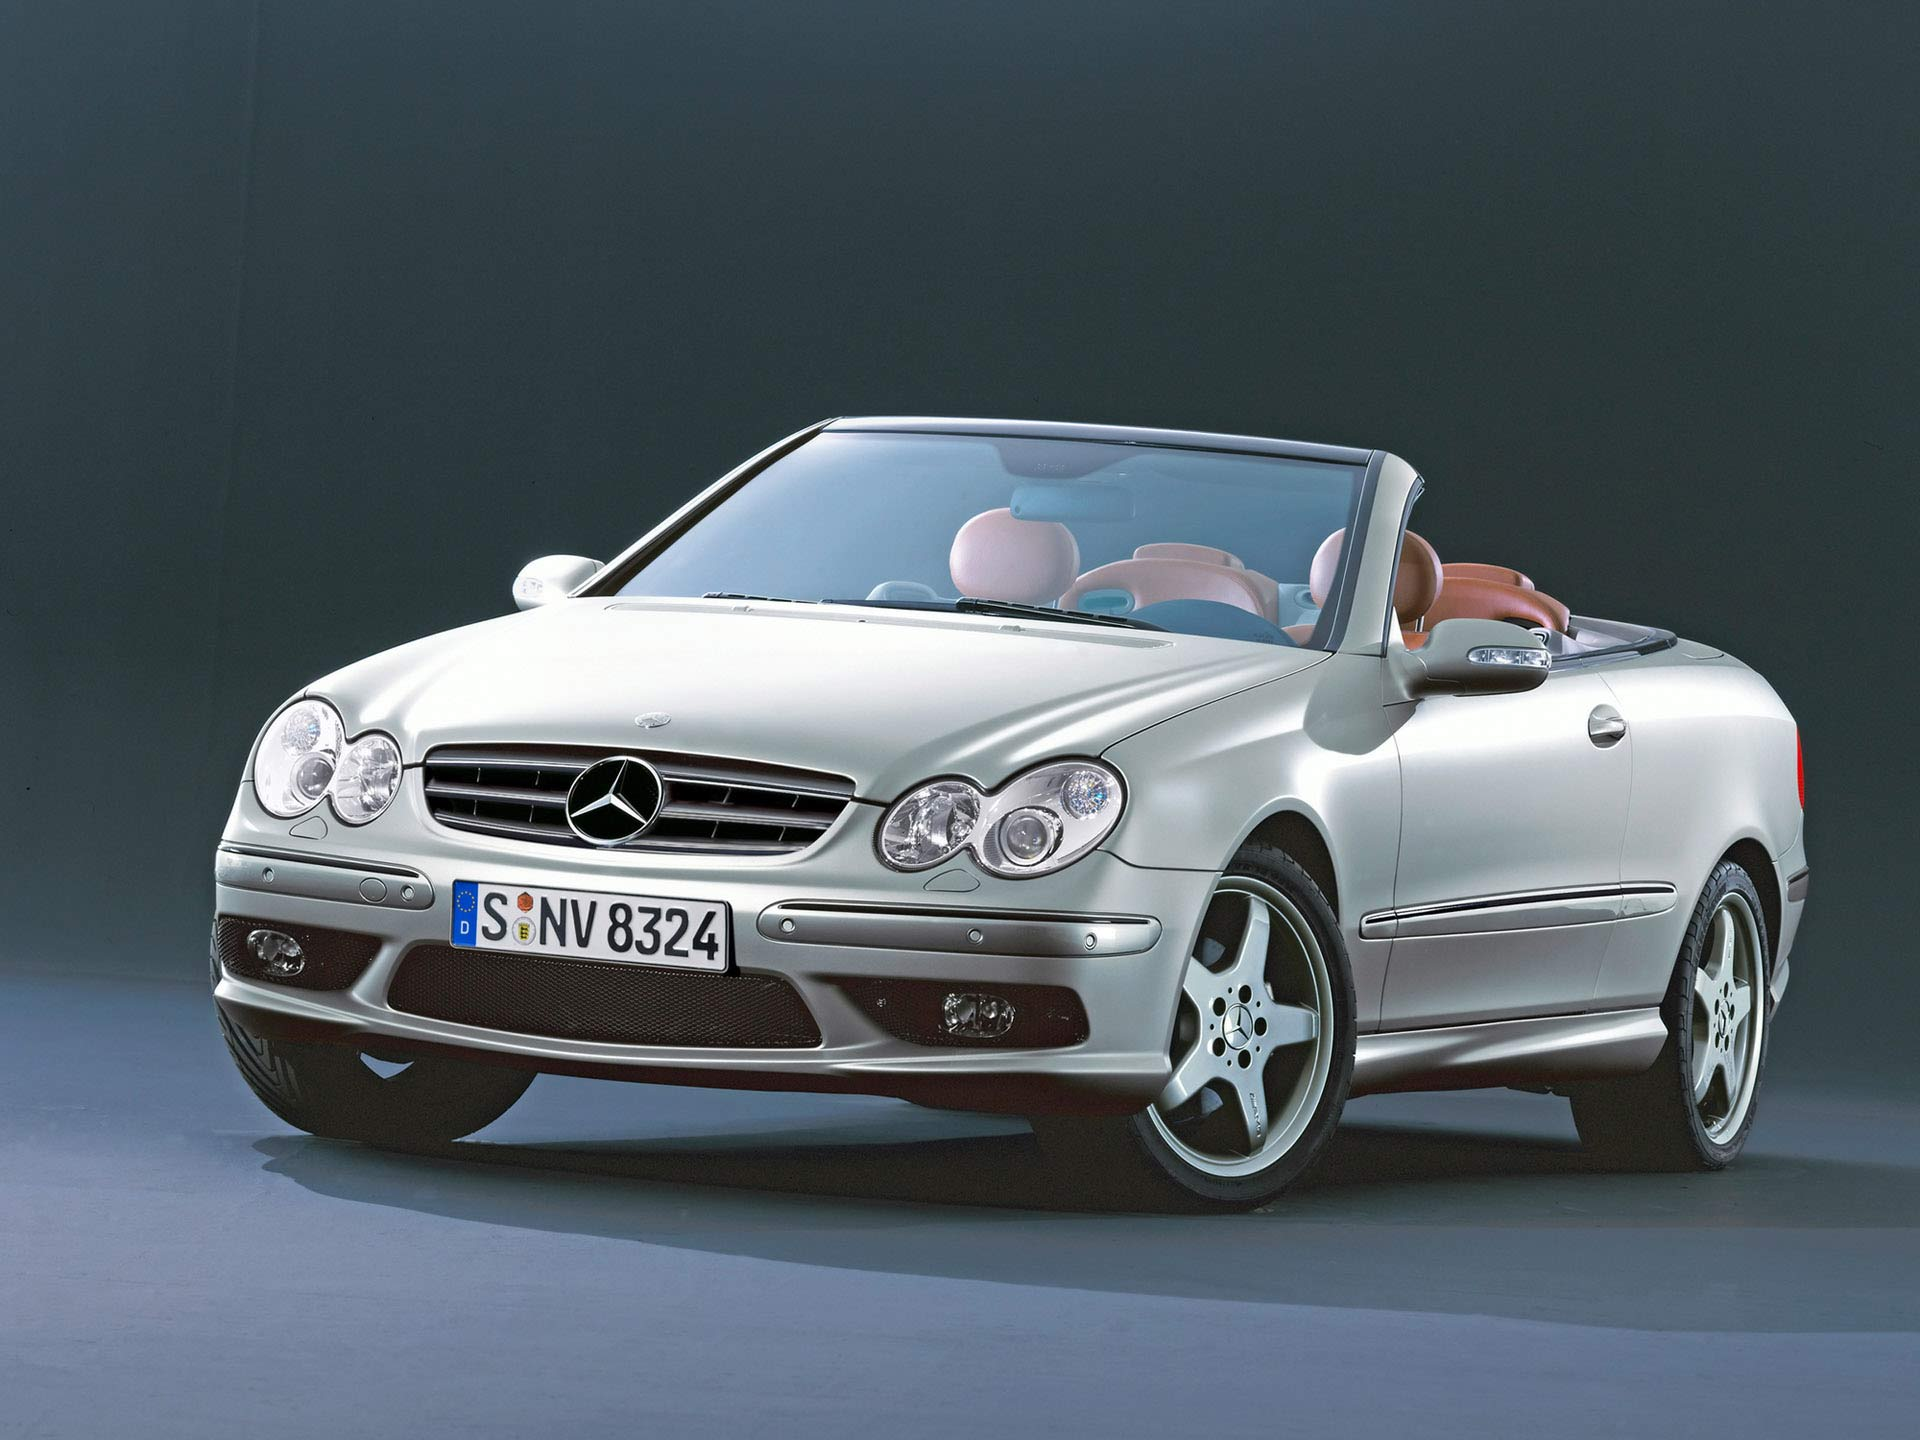 mercedes benz clk cabrio technical details history photos on better parts ltd. Black Bedroom Furniture Sets. Home Design Ideas